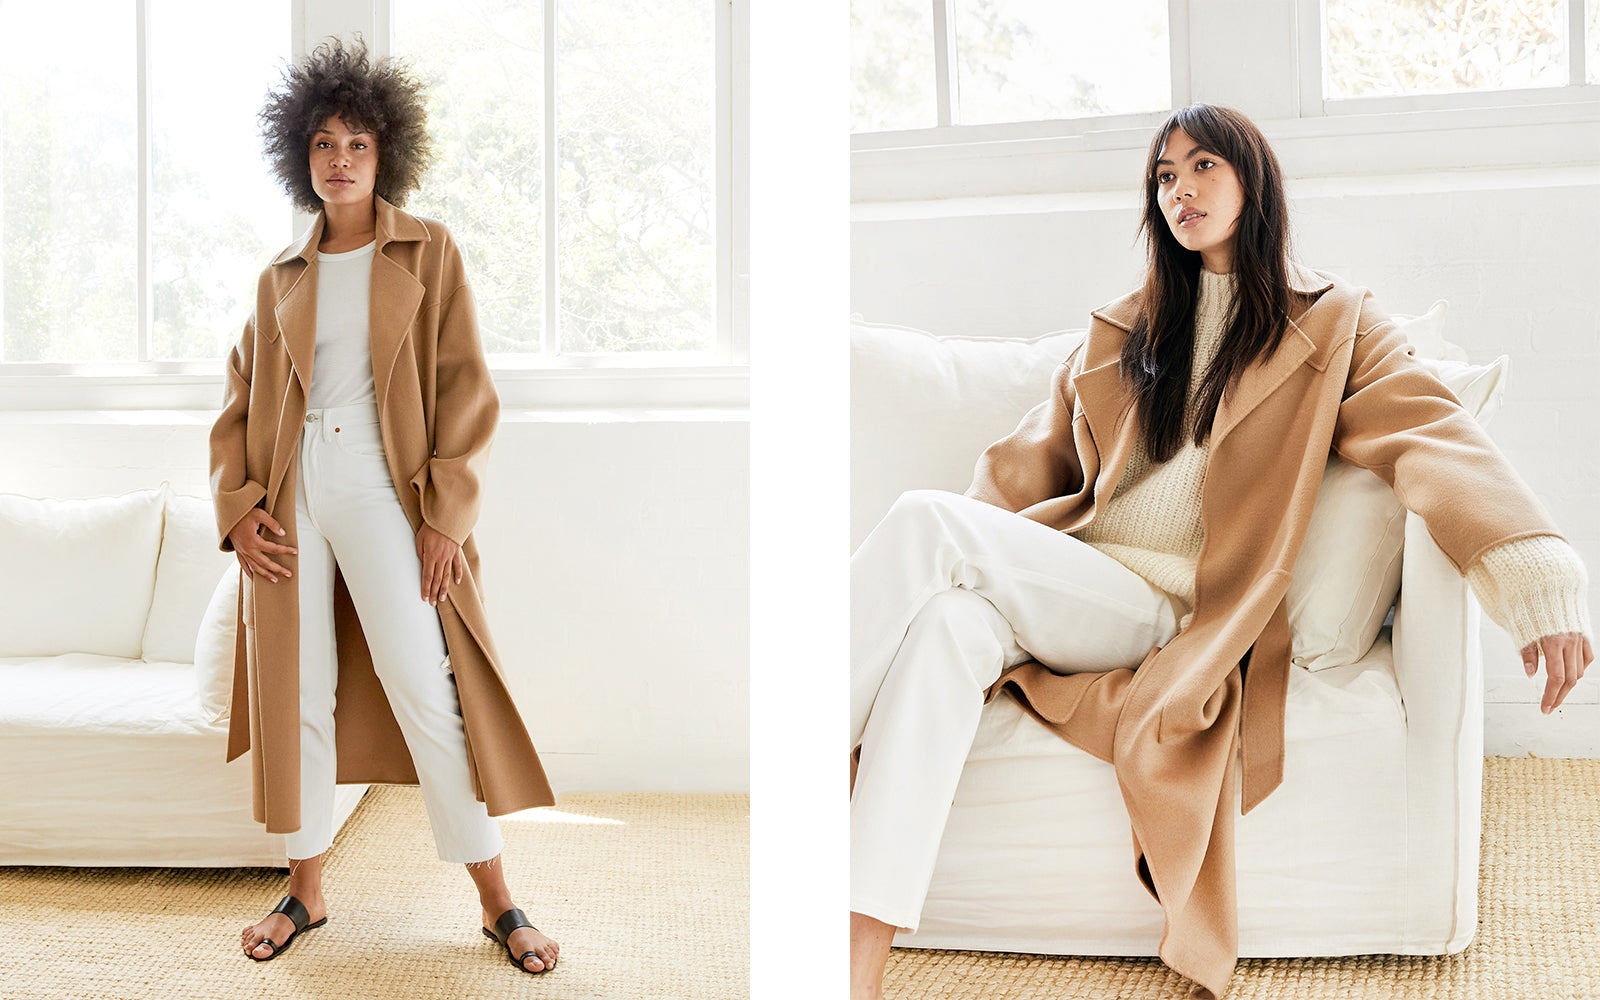 Outfit repeating: camel coat